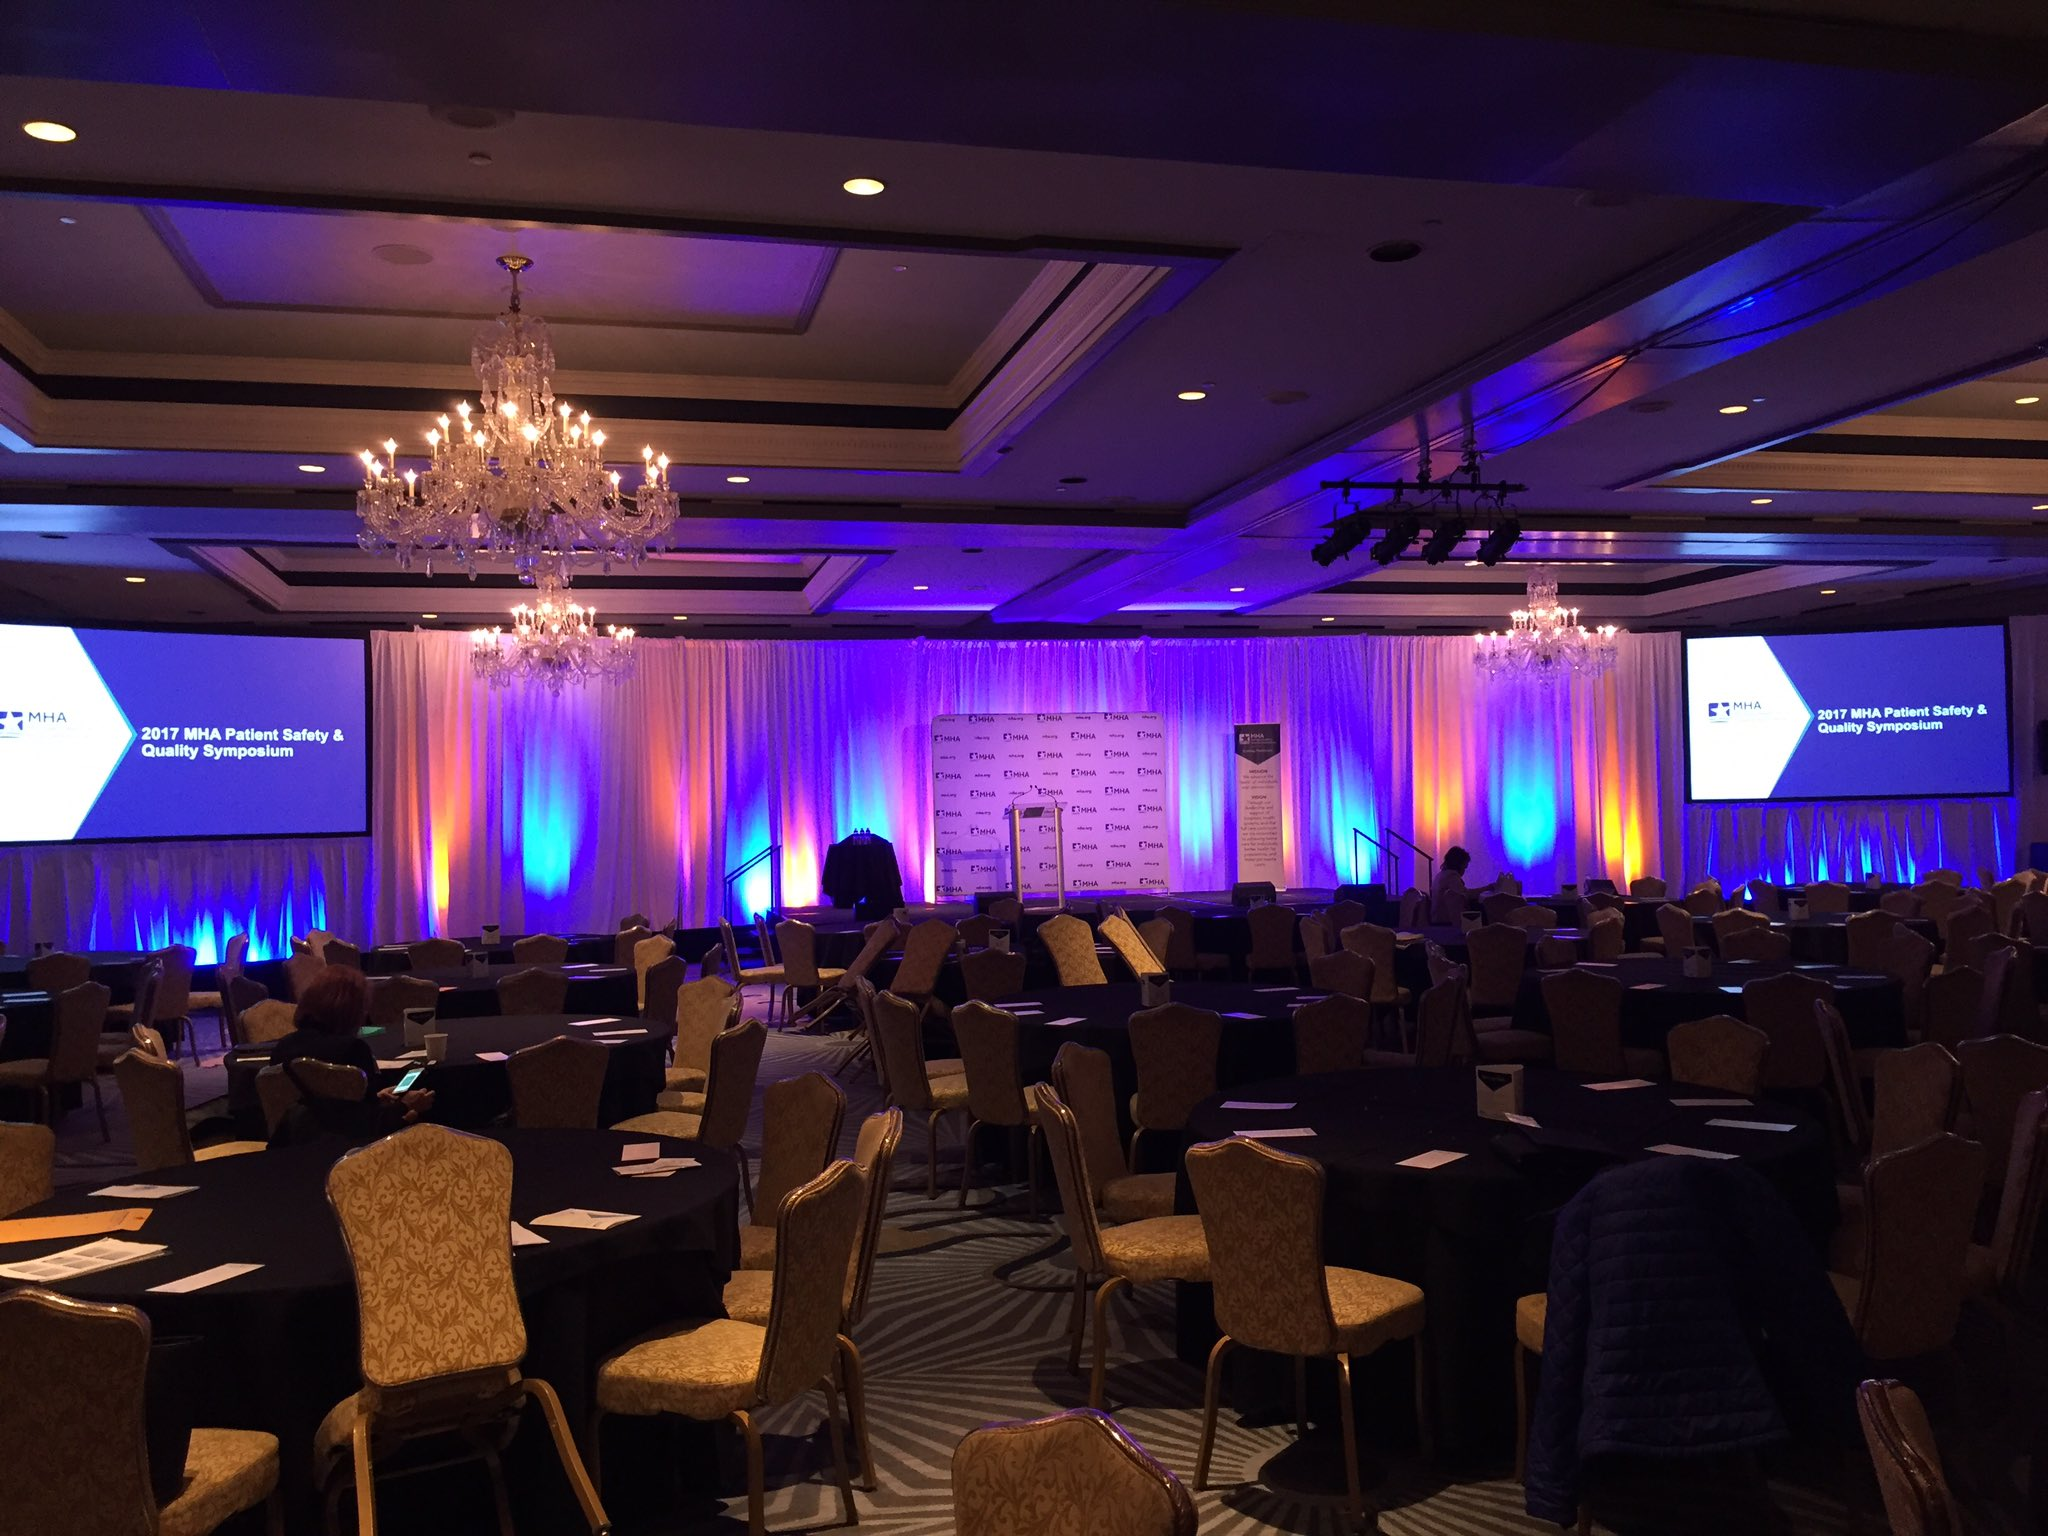 1.5 hours until we begin the MHA #PatientSafety & Quality Symposium! Check out the exhibit hall in the meantime! #MHAKeystone https://t.co/1ohakpjsBV